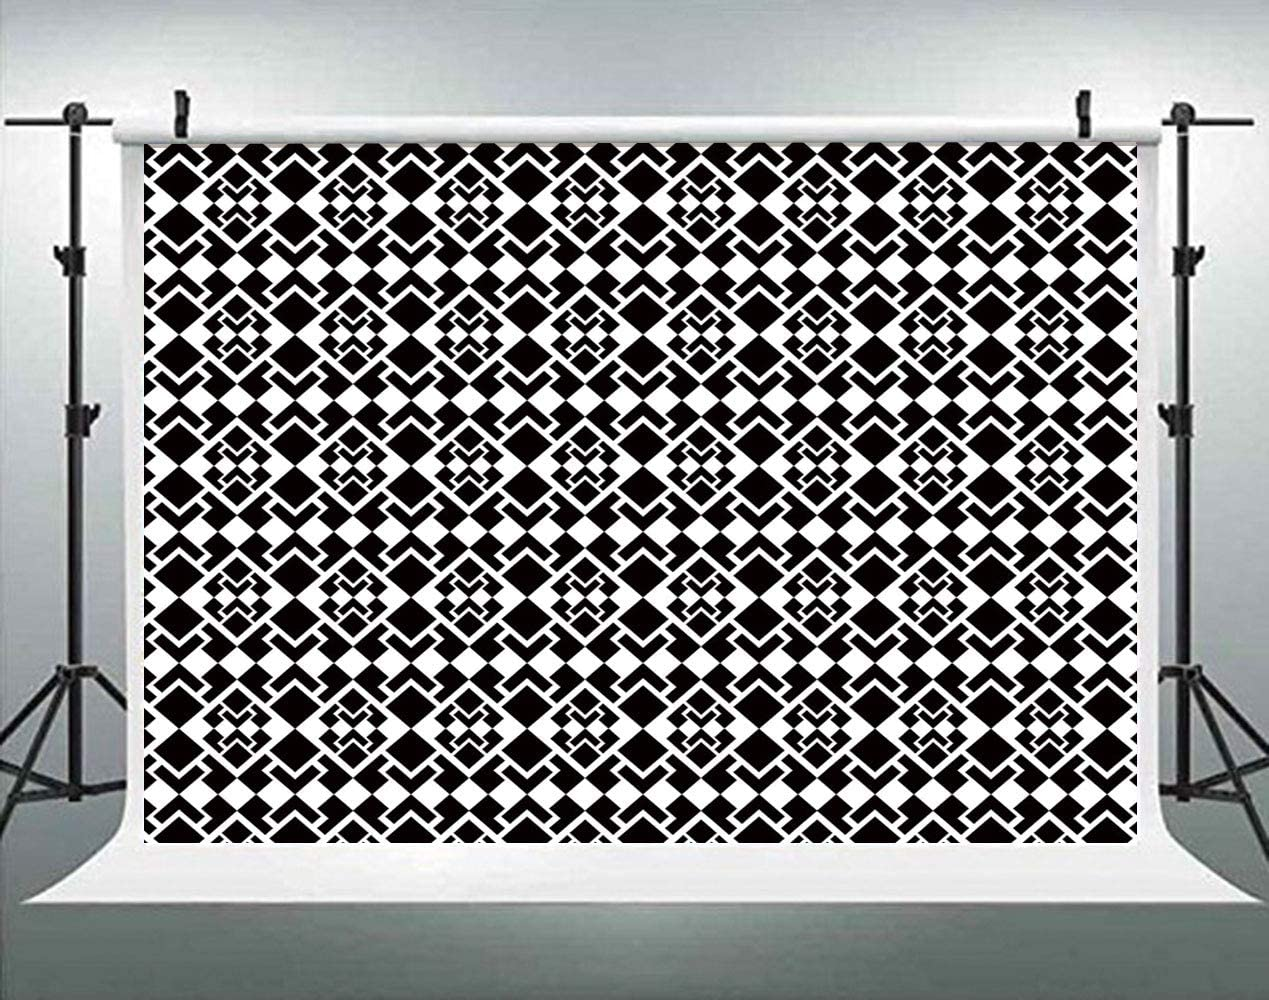 Pale Backdrop Vintage Photo Background Cotton for Booth Graduation Prom Decor No Wrinkle AM001556 Geometric Tile Illustration Retro Modern Ornament ALUONI 7x5ft Abstract